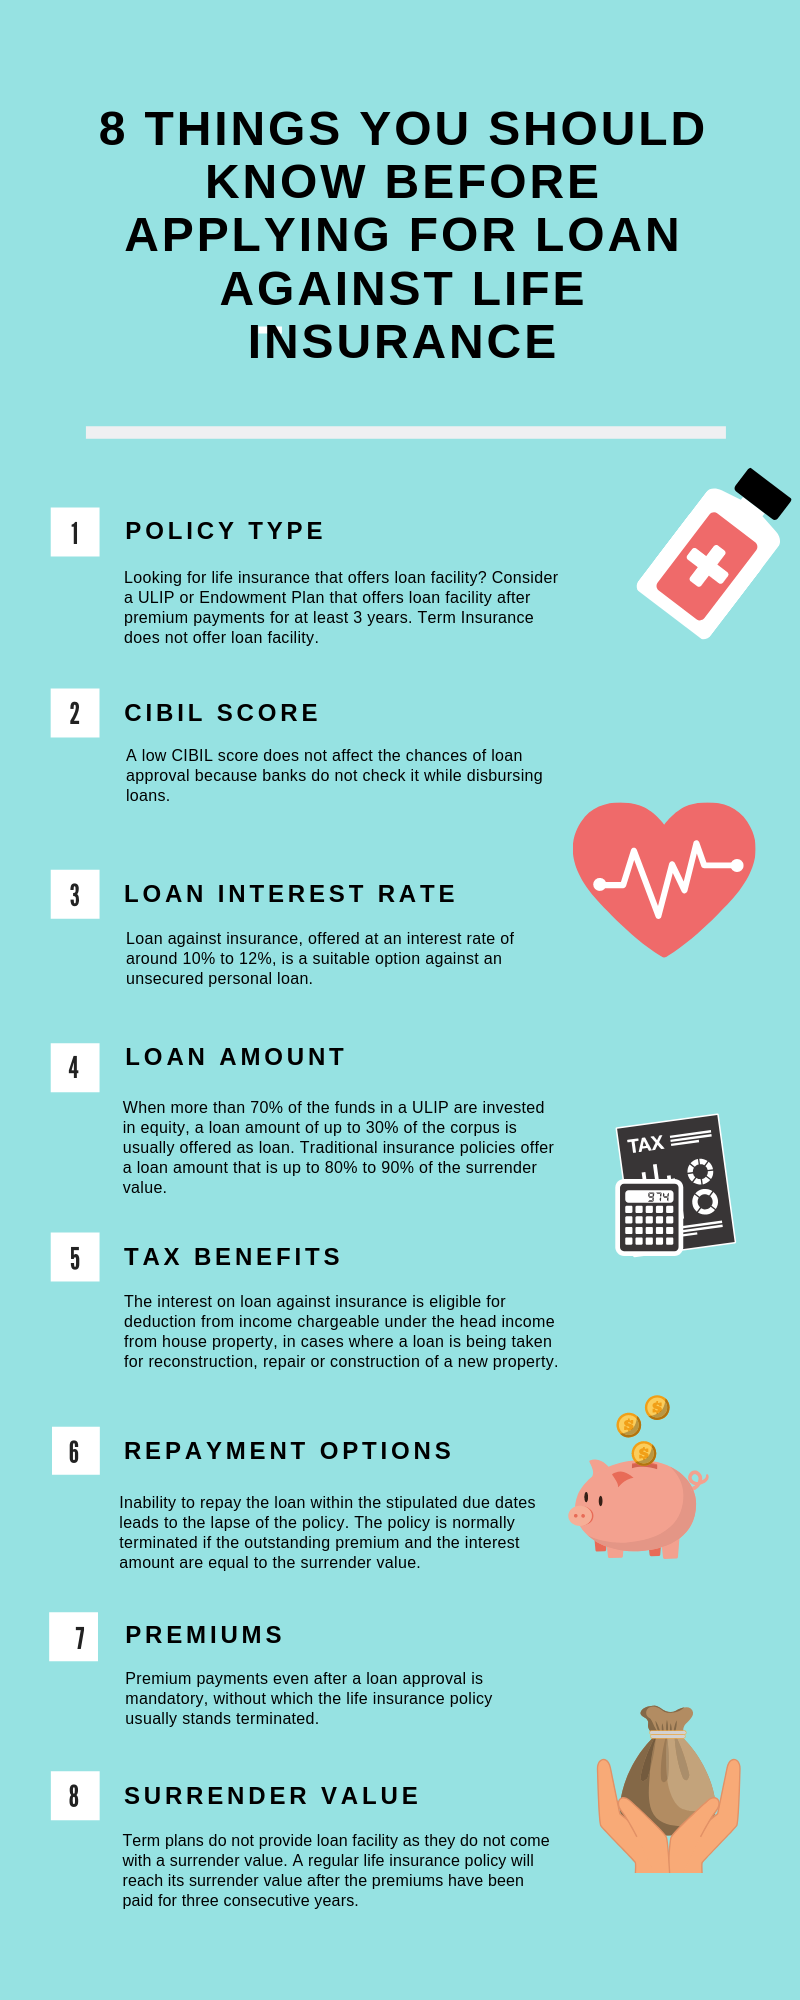 How to get loan against life insurance policy?